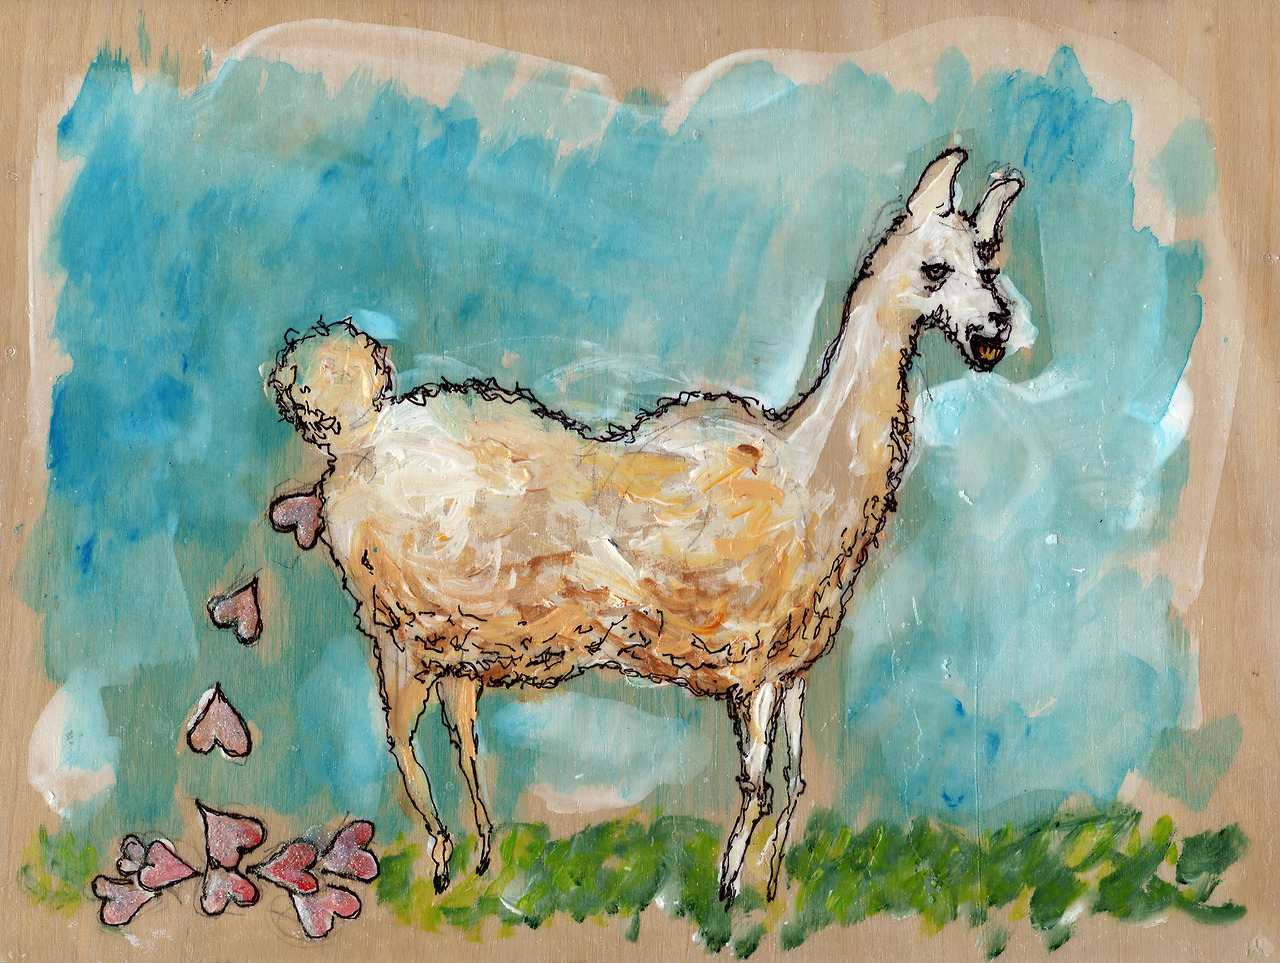 10/25/13 -  What Llamas Poop.    Llamas are strange, mythical beasts. If they did exist I'm pretty sure this is what they would poop.   Buy it here -  http://taylorwinder.bigcartel.com    Prints here -  http://society6.com/taylorwinder